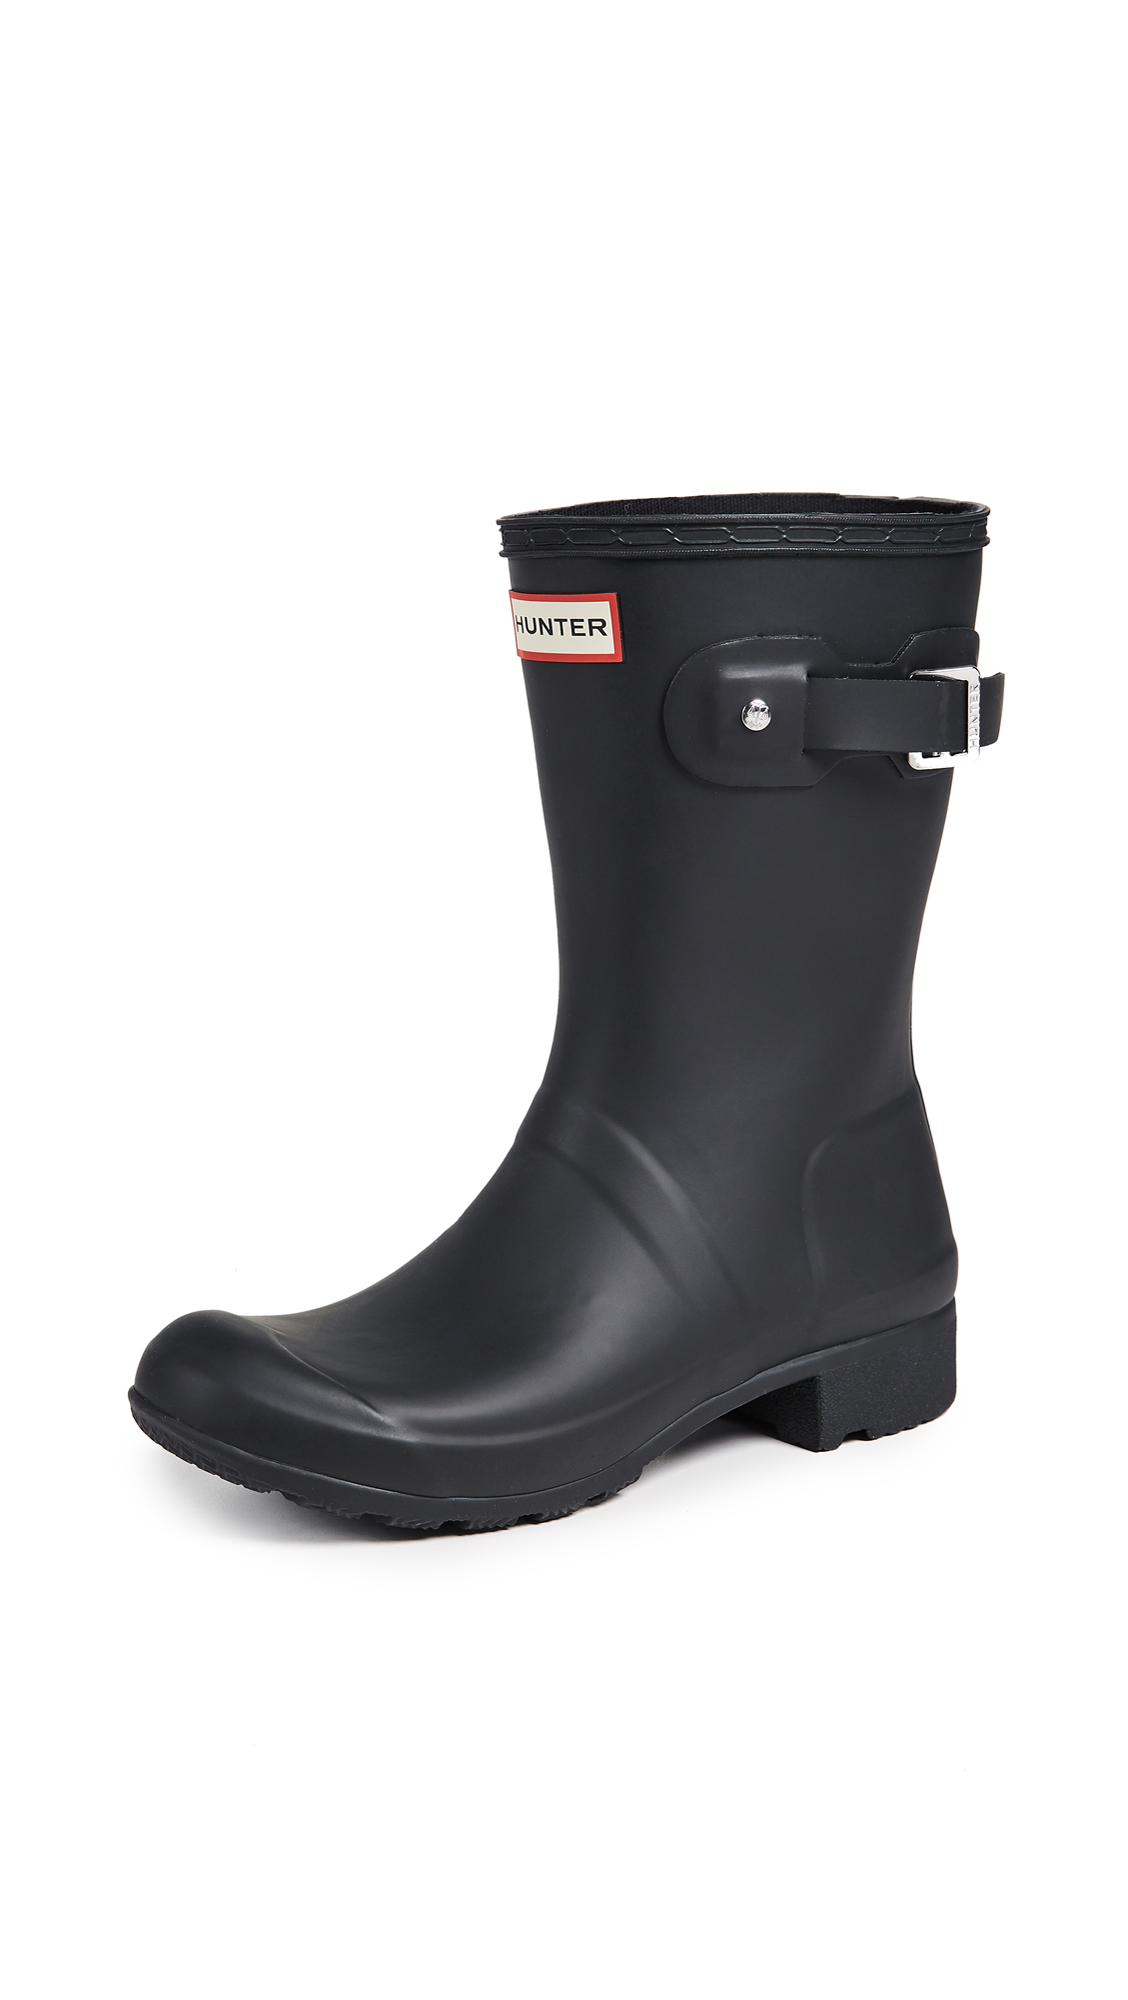 Hunter Boots Original Tour Short Boots - Black